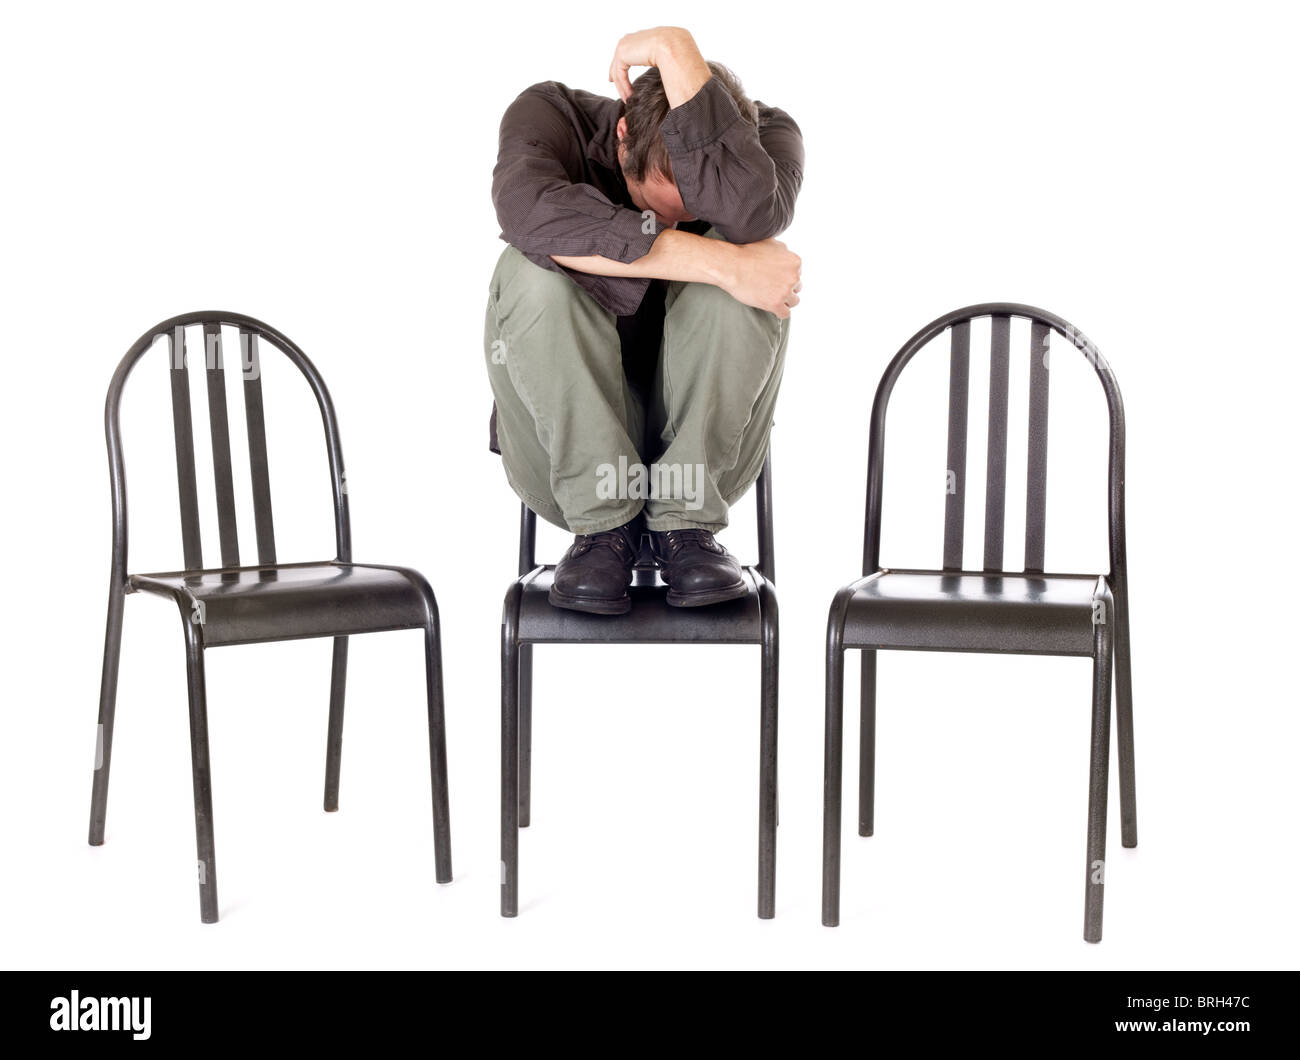 very anxious and sad man hiding himself and alone - Stock Image